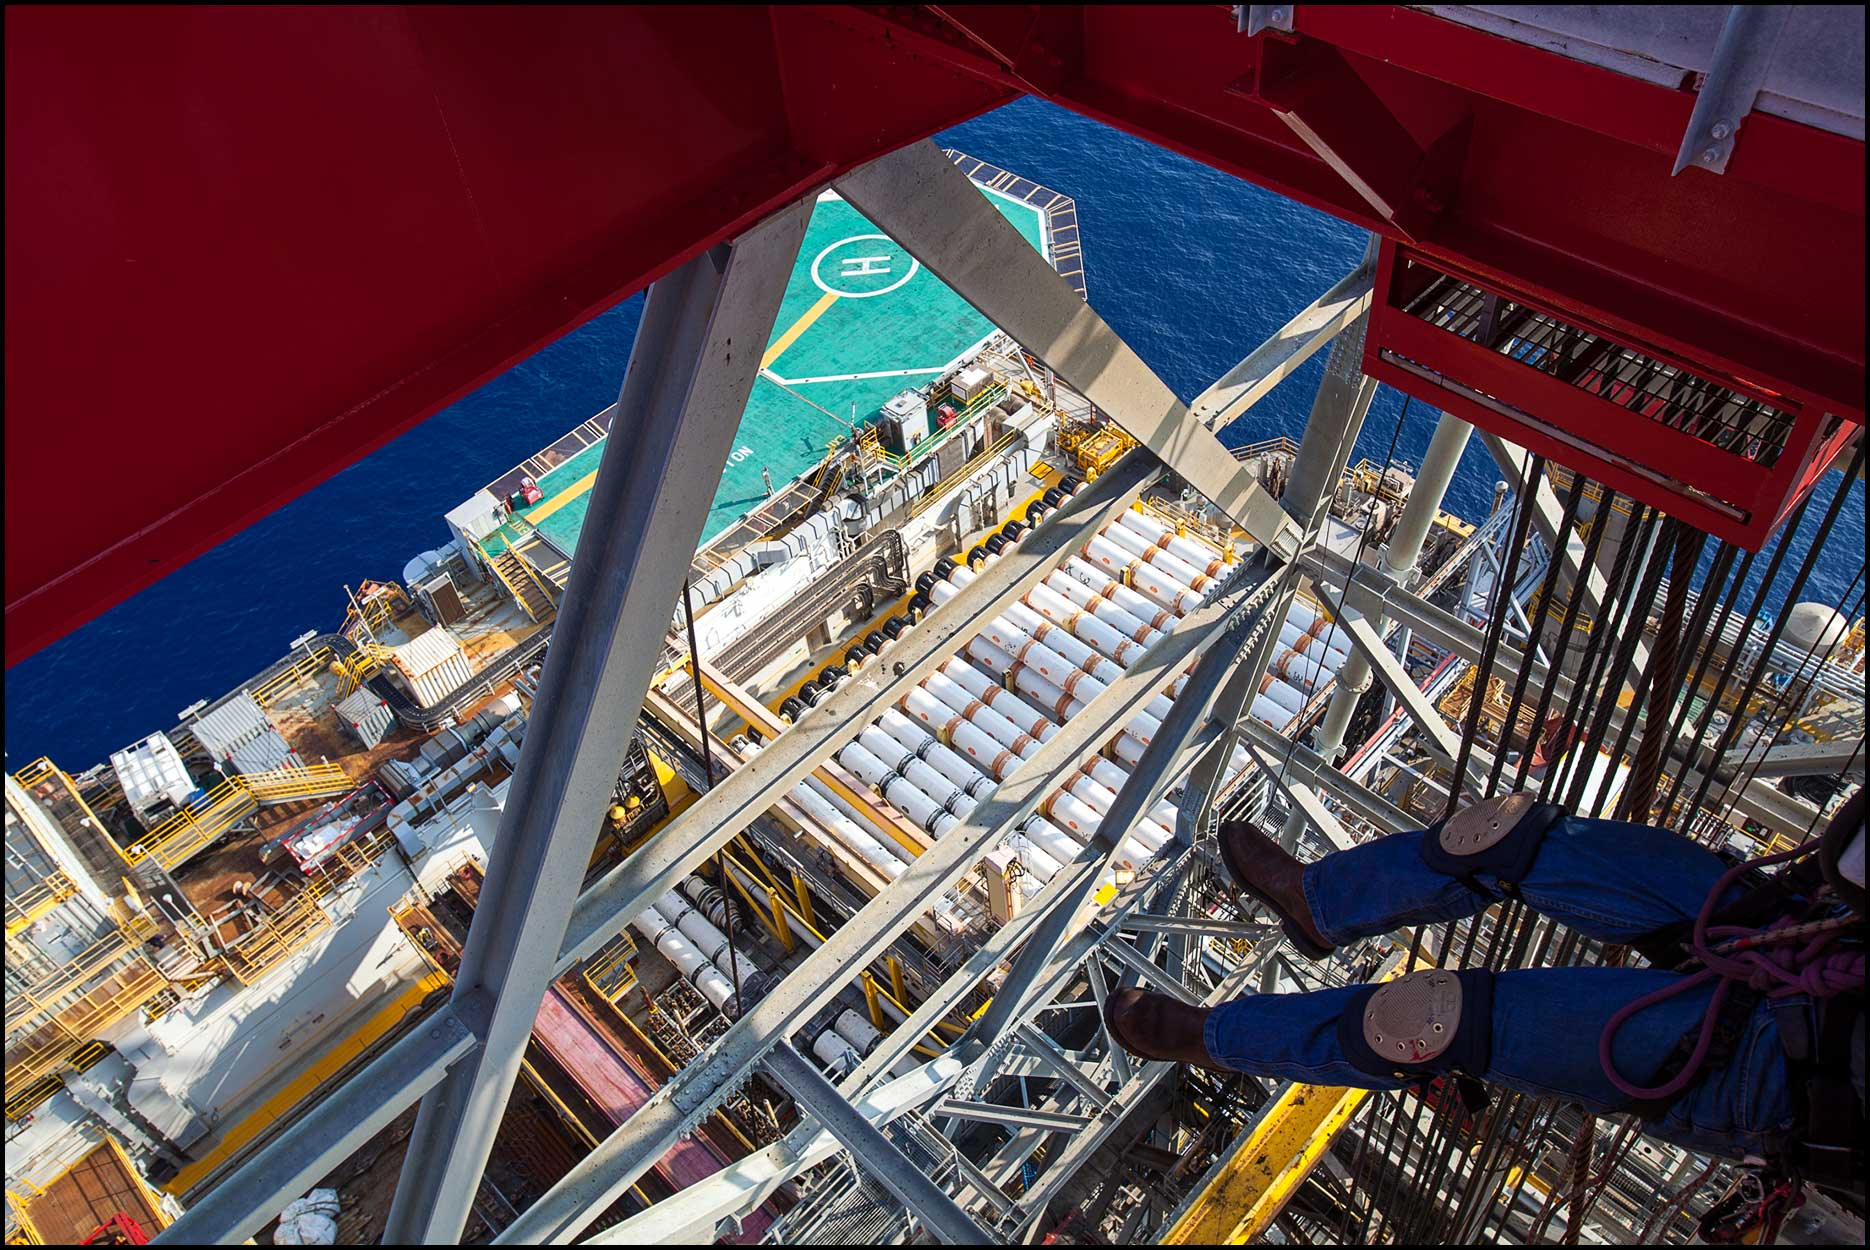 An overhead view of the legs and harness of an industrial painter suspended from the underside of an offshore rig derrick, high above the deck below.